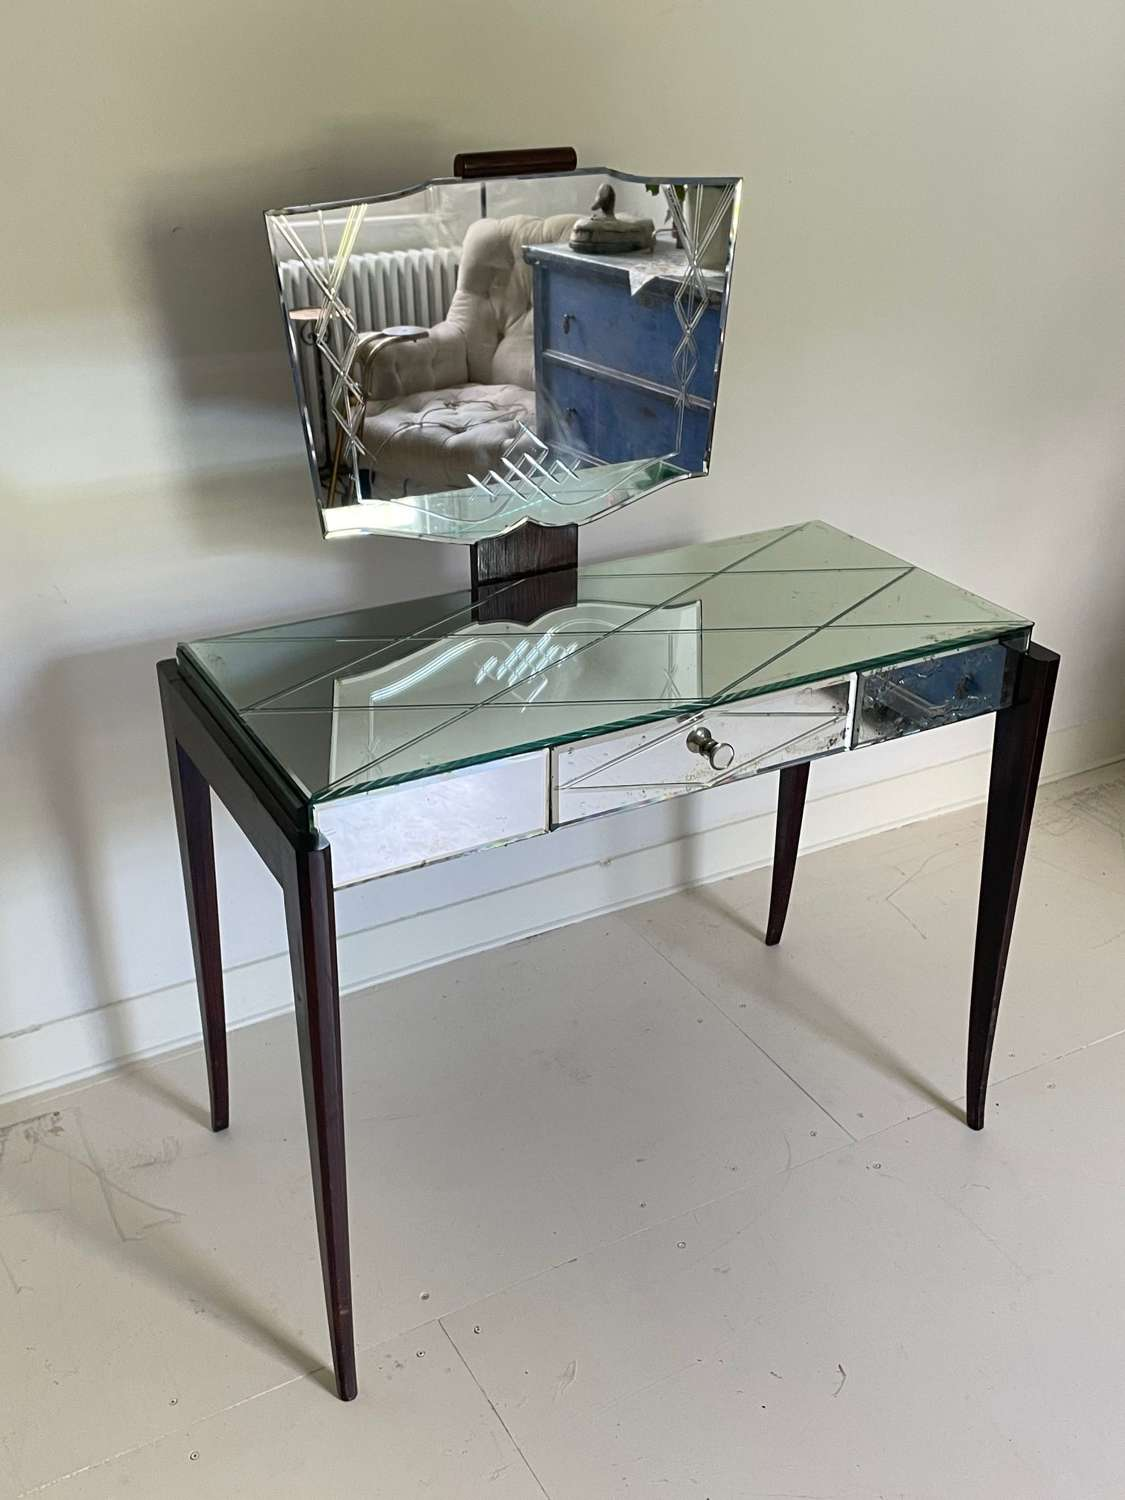 Art Deco Mirrored Dressing Table - 40s